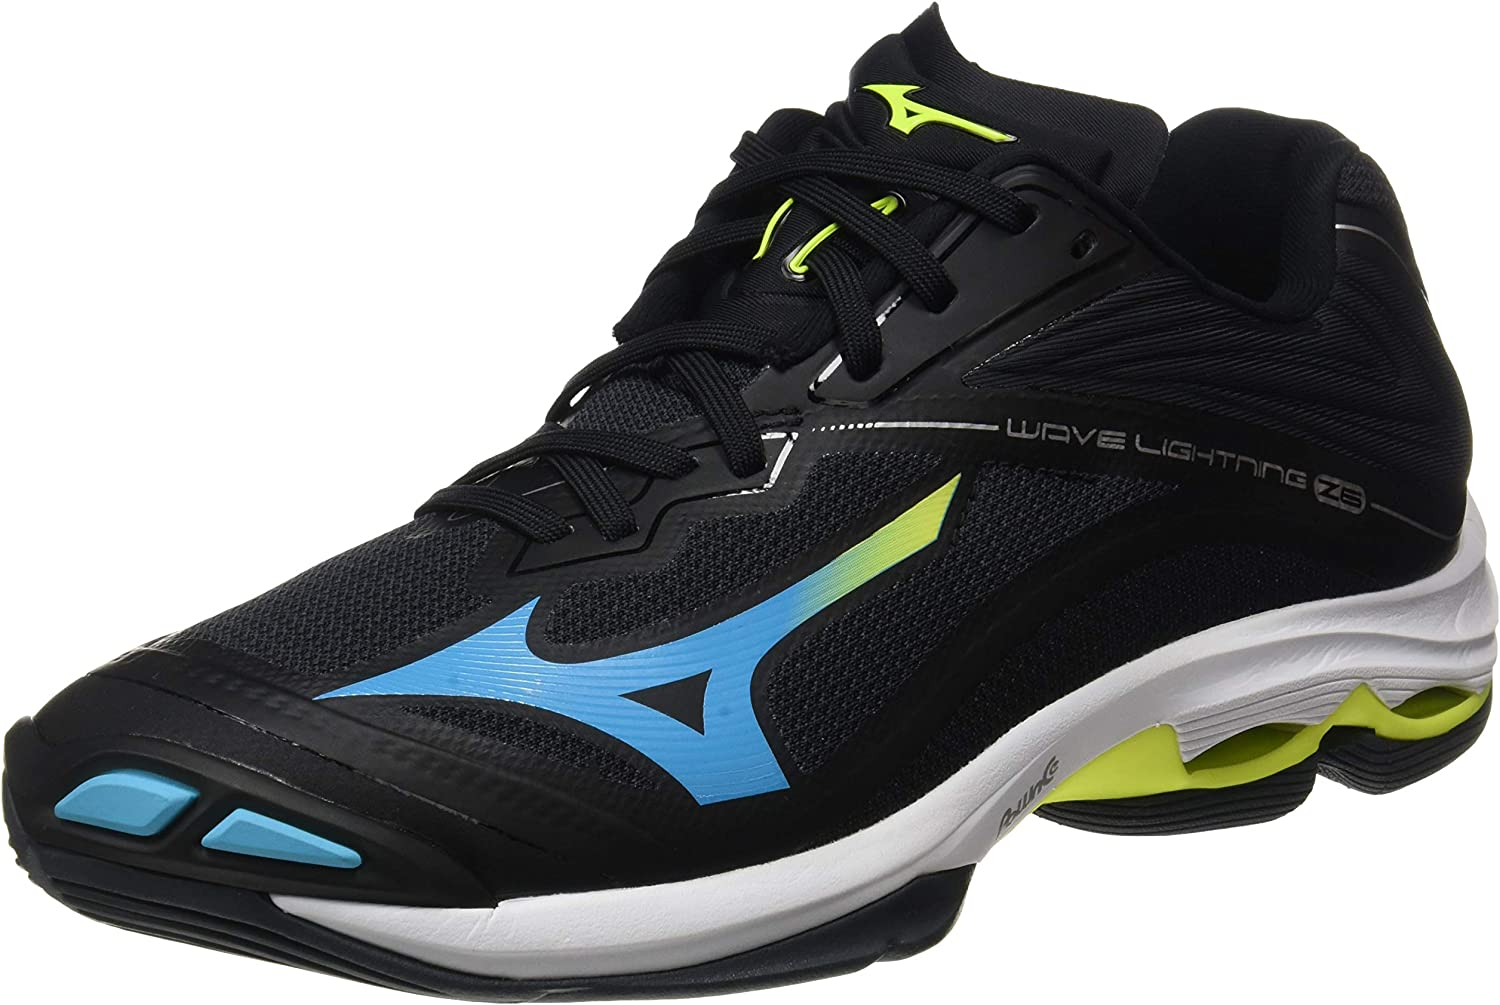 Mizuno unisex-adult Wave Limited time Directly managed store cheap sale Z6 Lightning